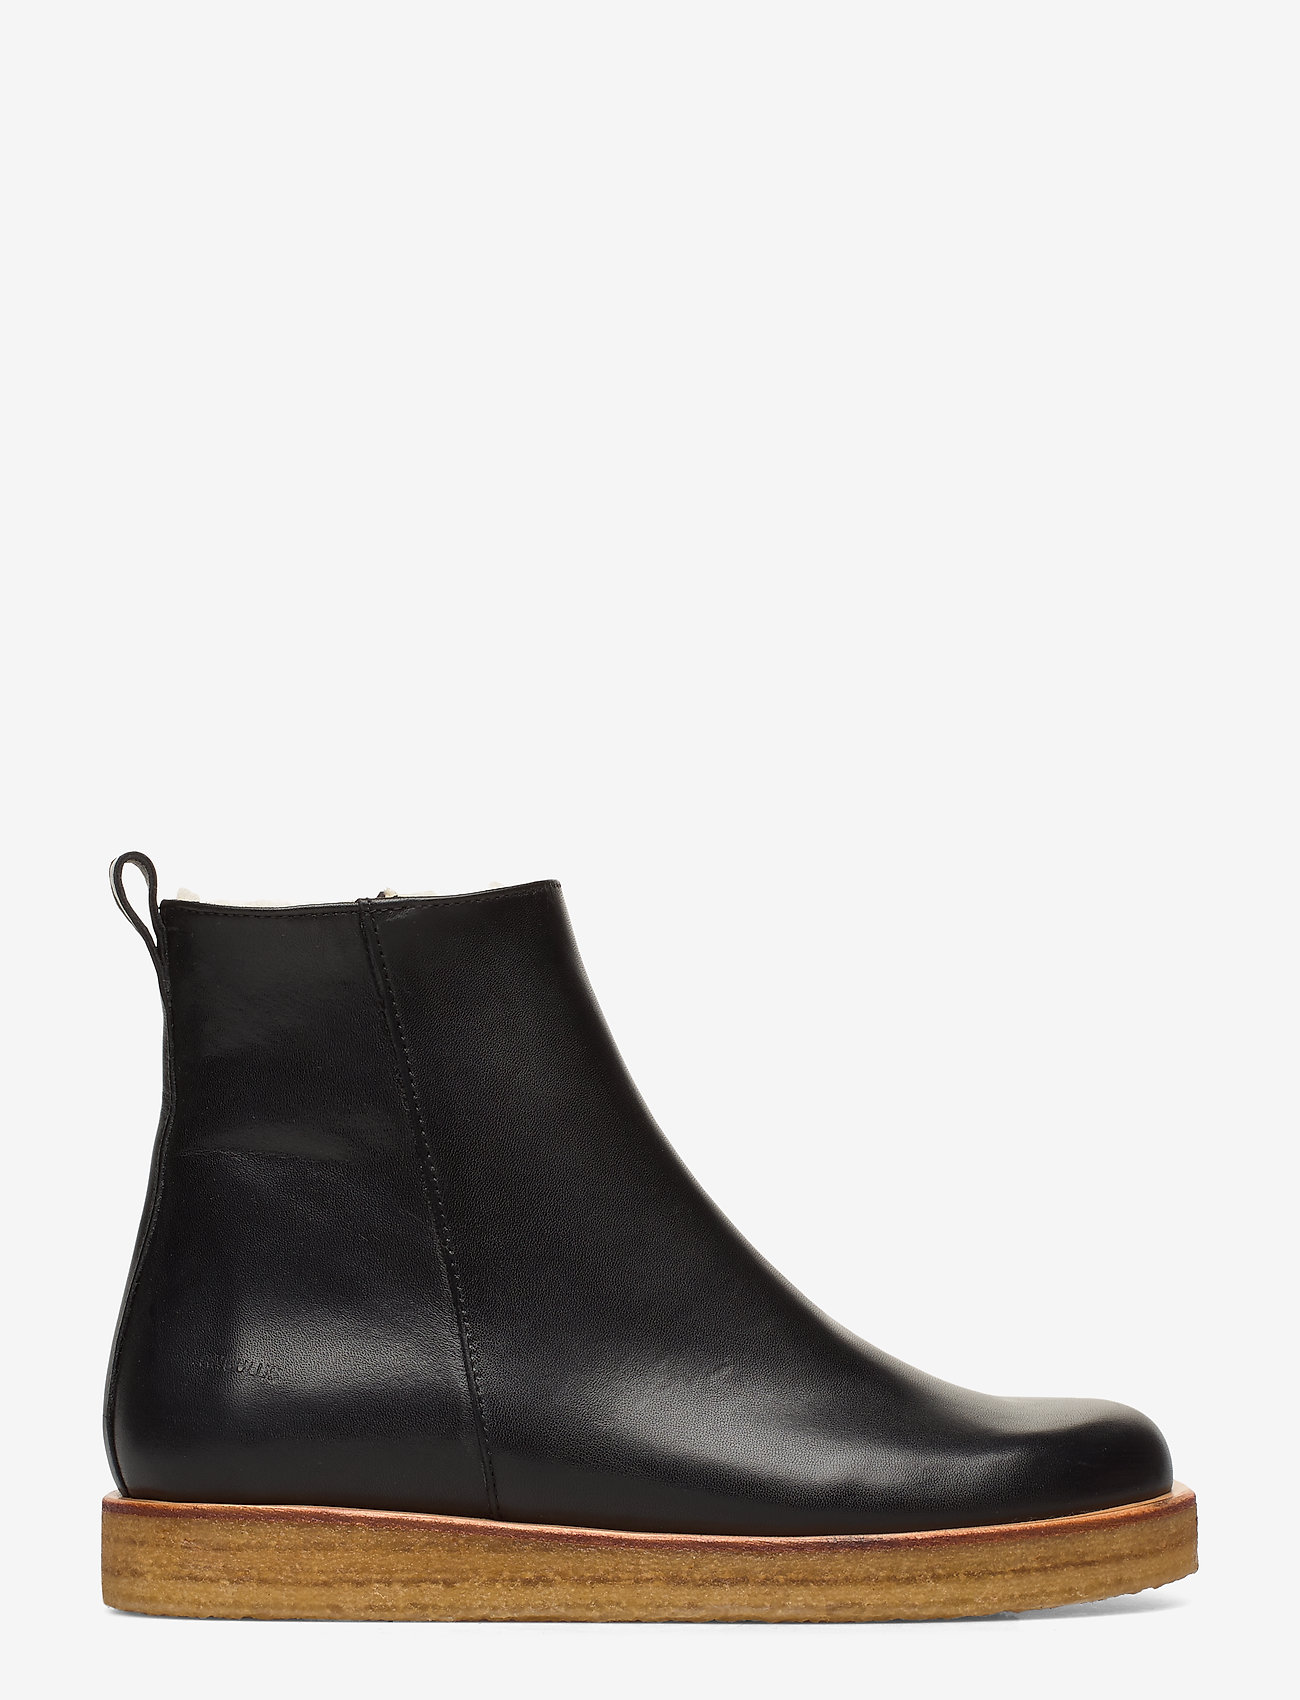 ANGULUS - Boots - flat - with laces - platta ankelboots - 1604 black - 1